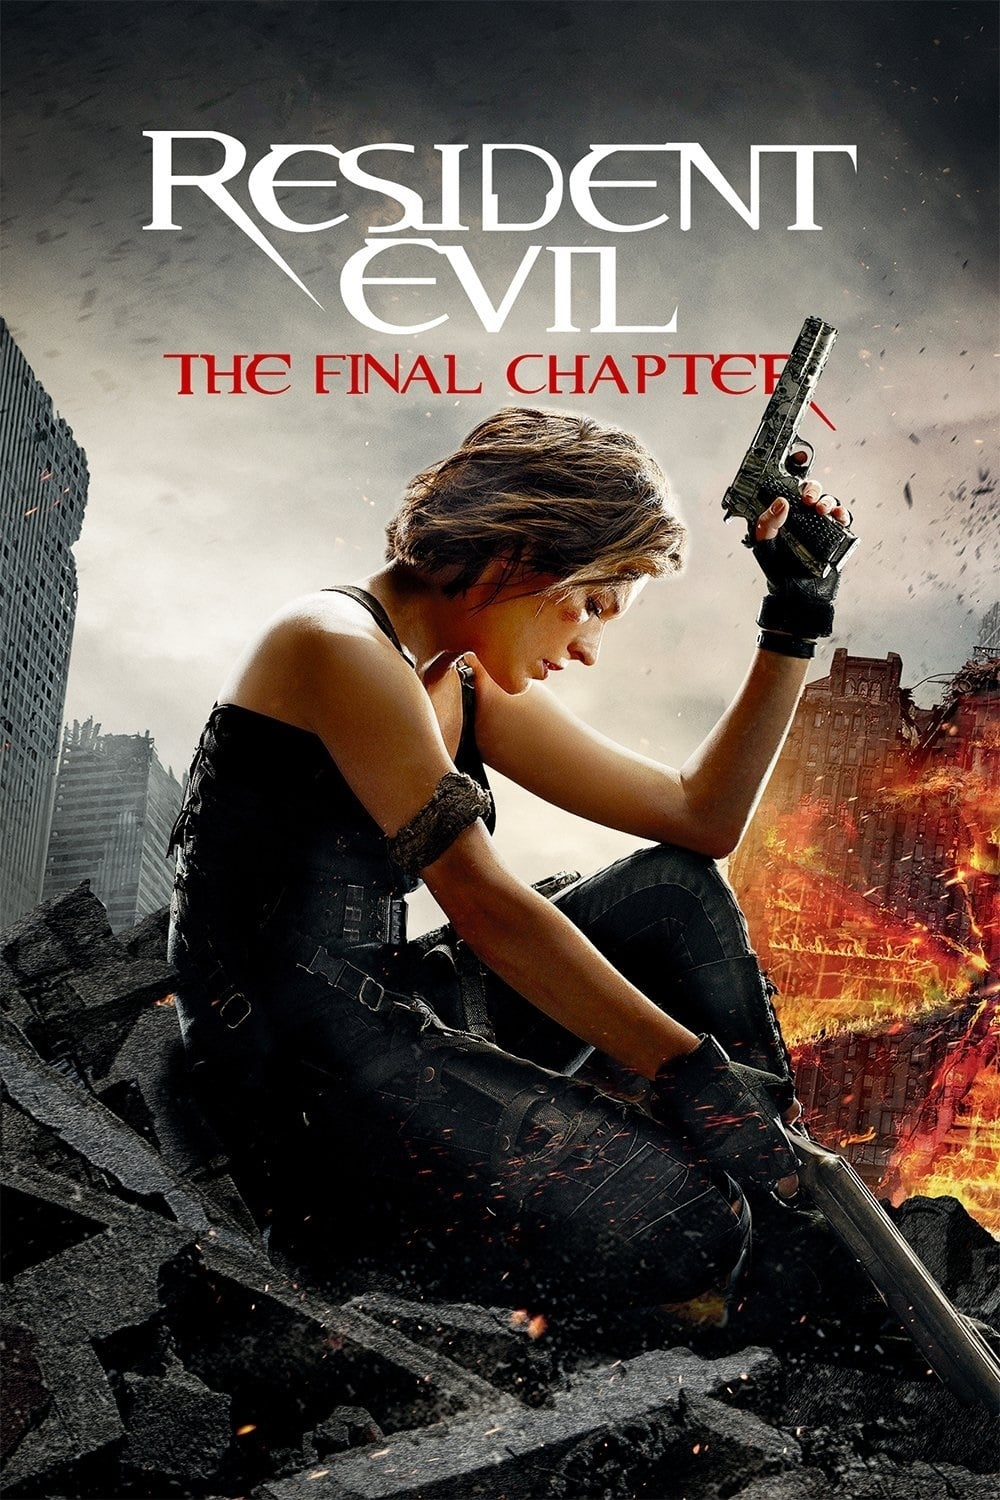 Resident Evil Chapitre Final Streaming : resident, chapitre, final, streaming, Resident, Evil:, Final, Chapter, Movie, Streaming, Online, Watch, Google, Play,, Youtube,, ITunes